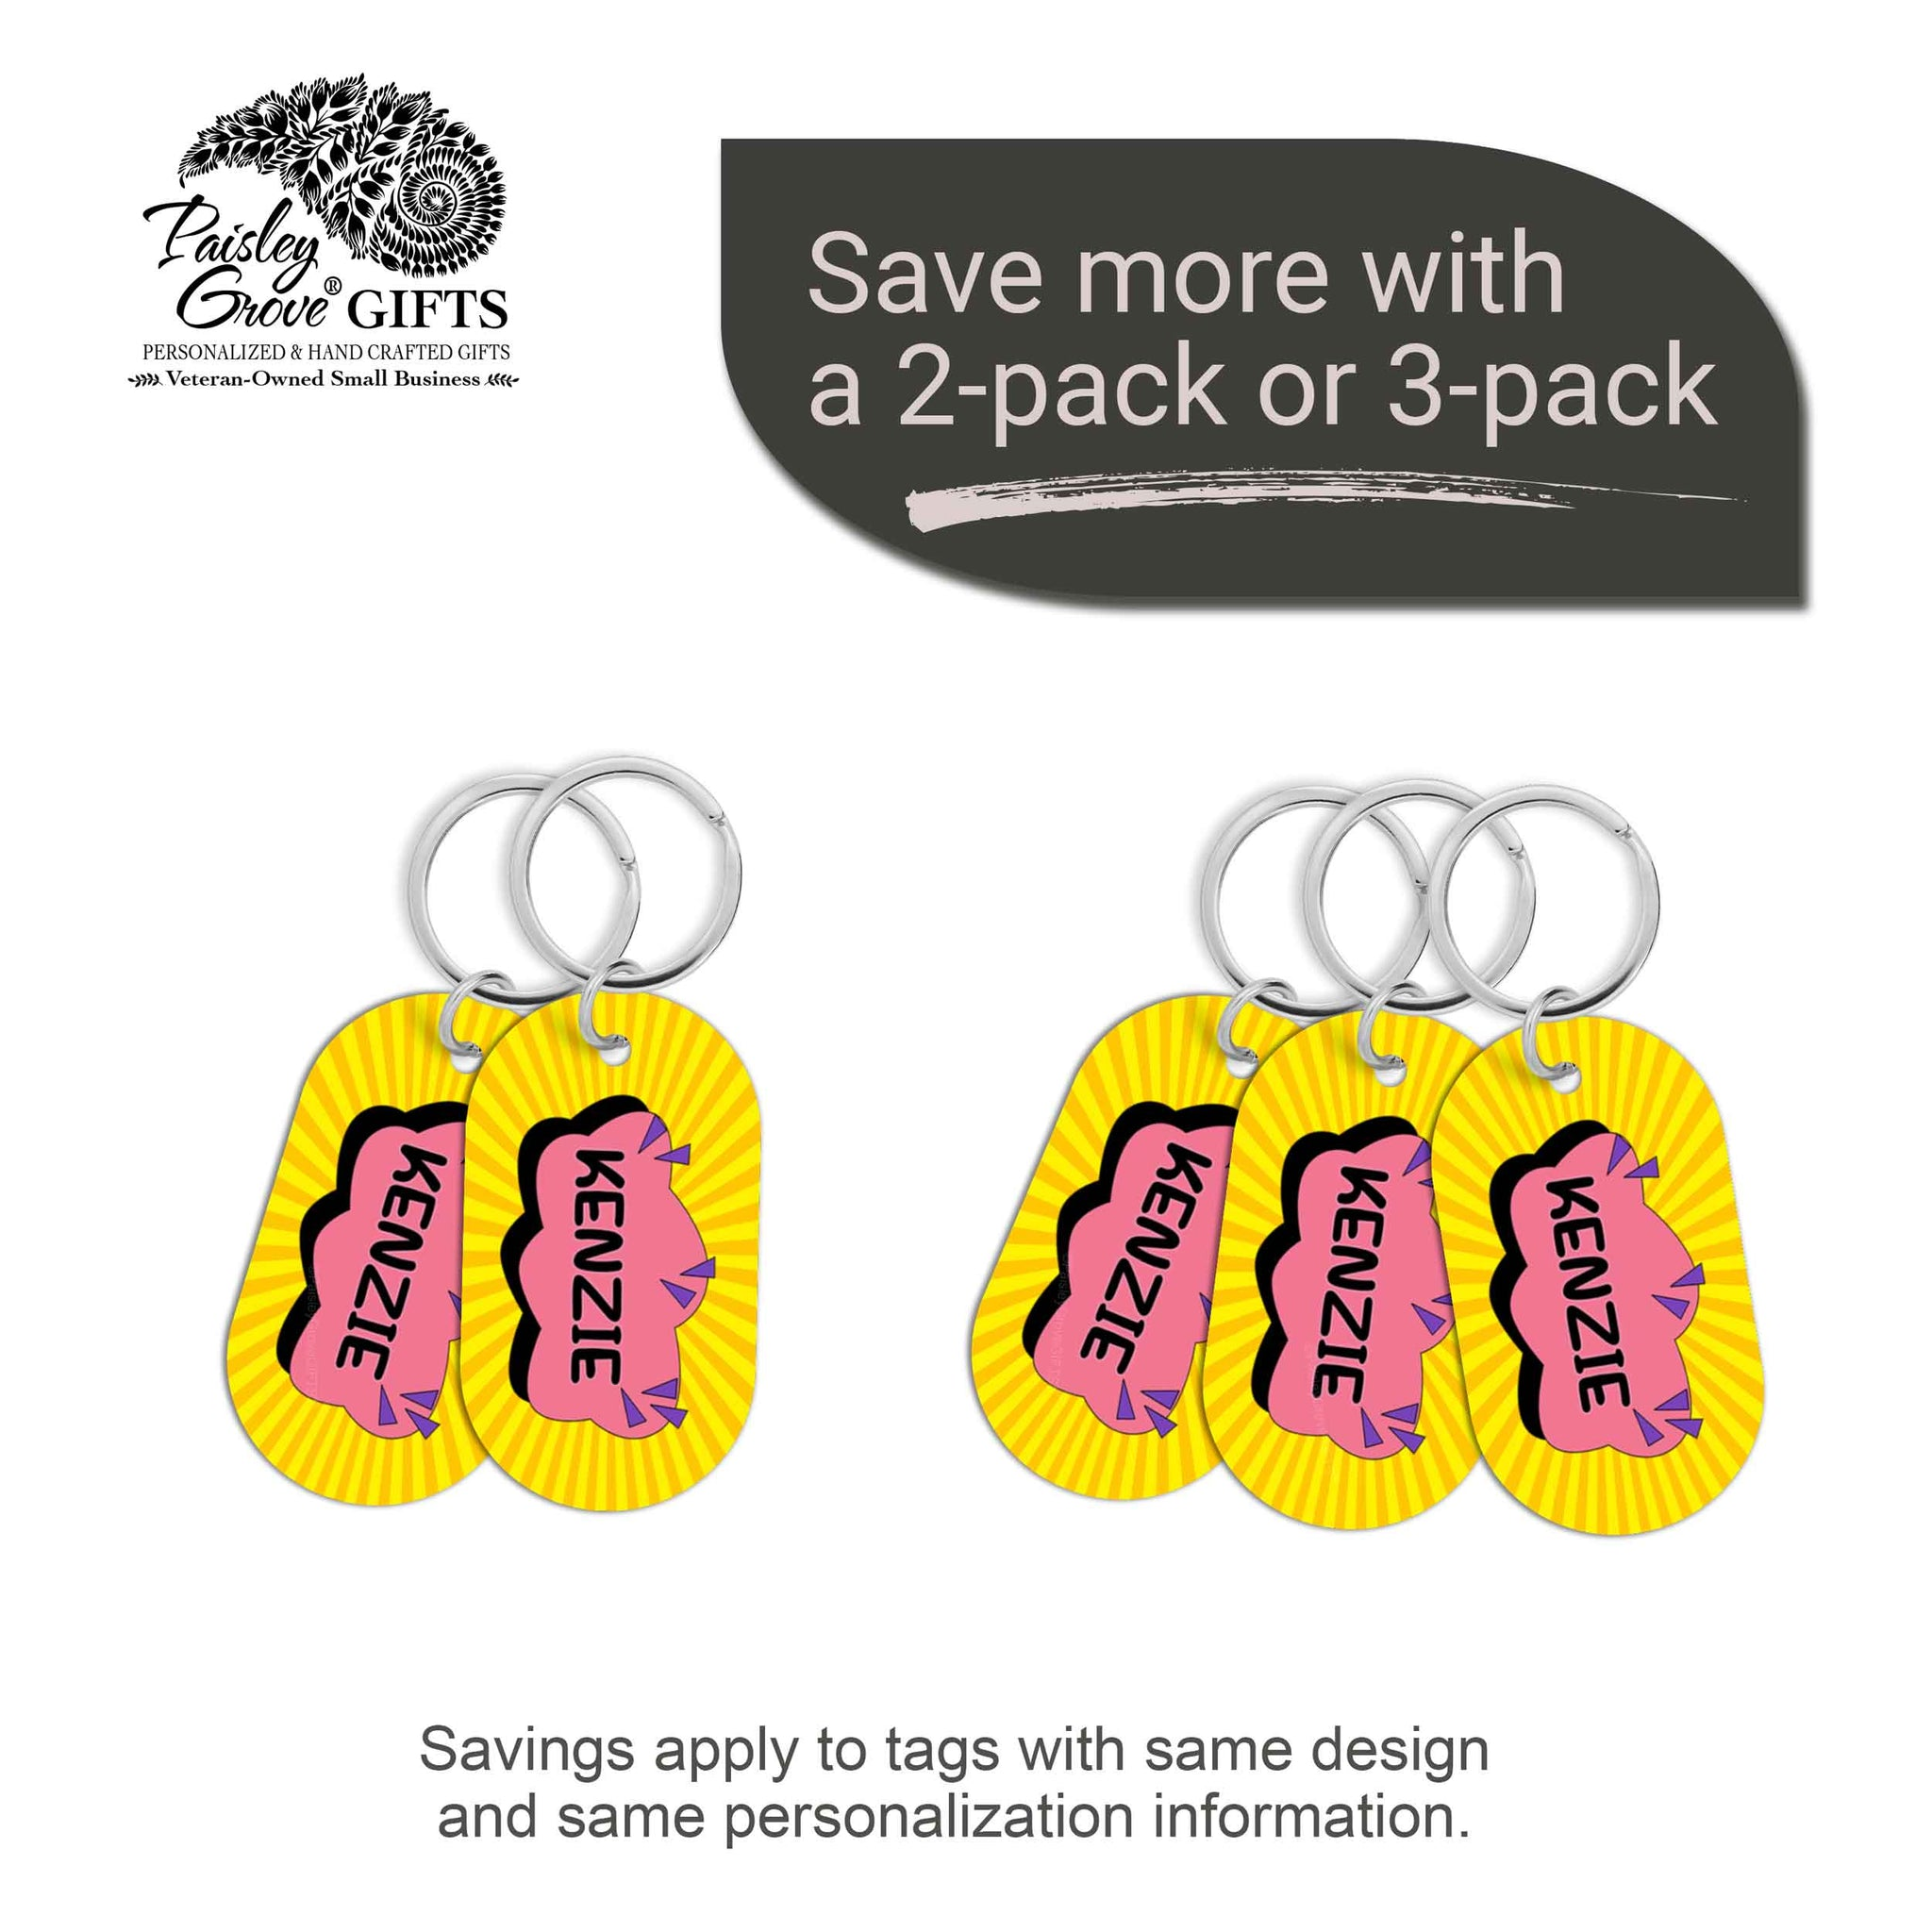 CopyrightPaisleyGroveGIFTS S070b3 Personalized bag ID tags for luggage or bags 2 or 3 pack option savings